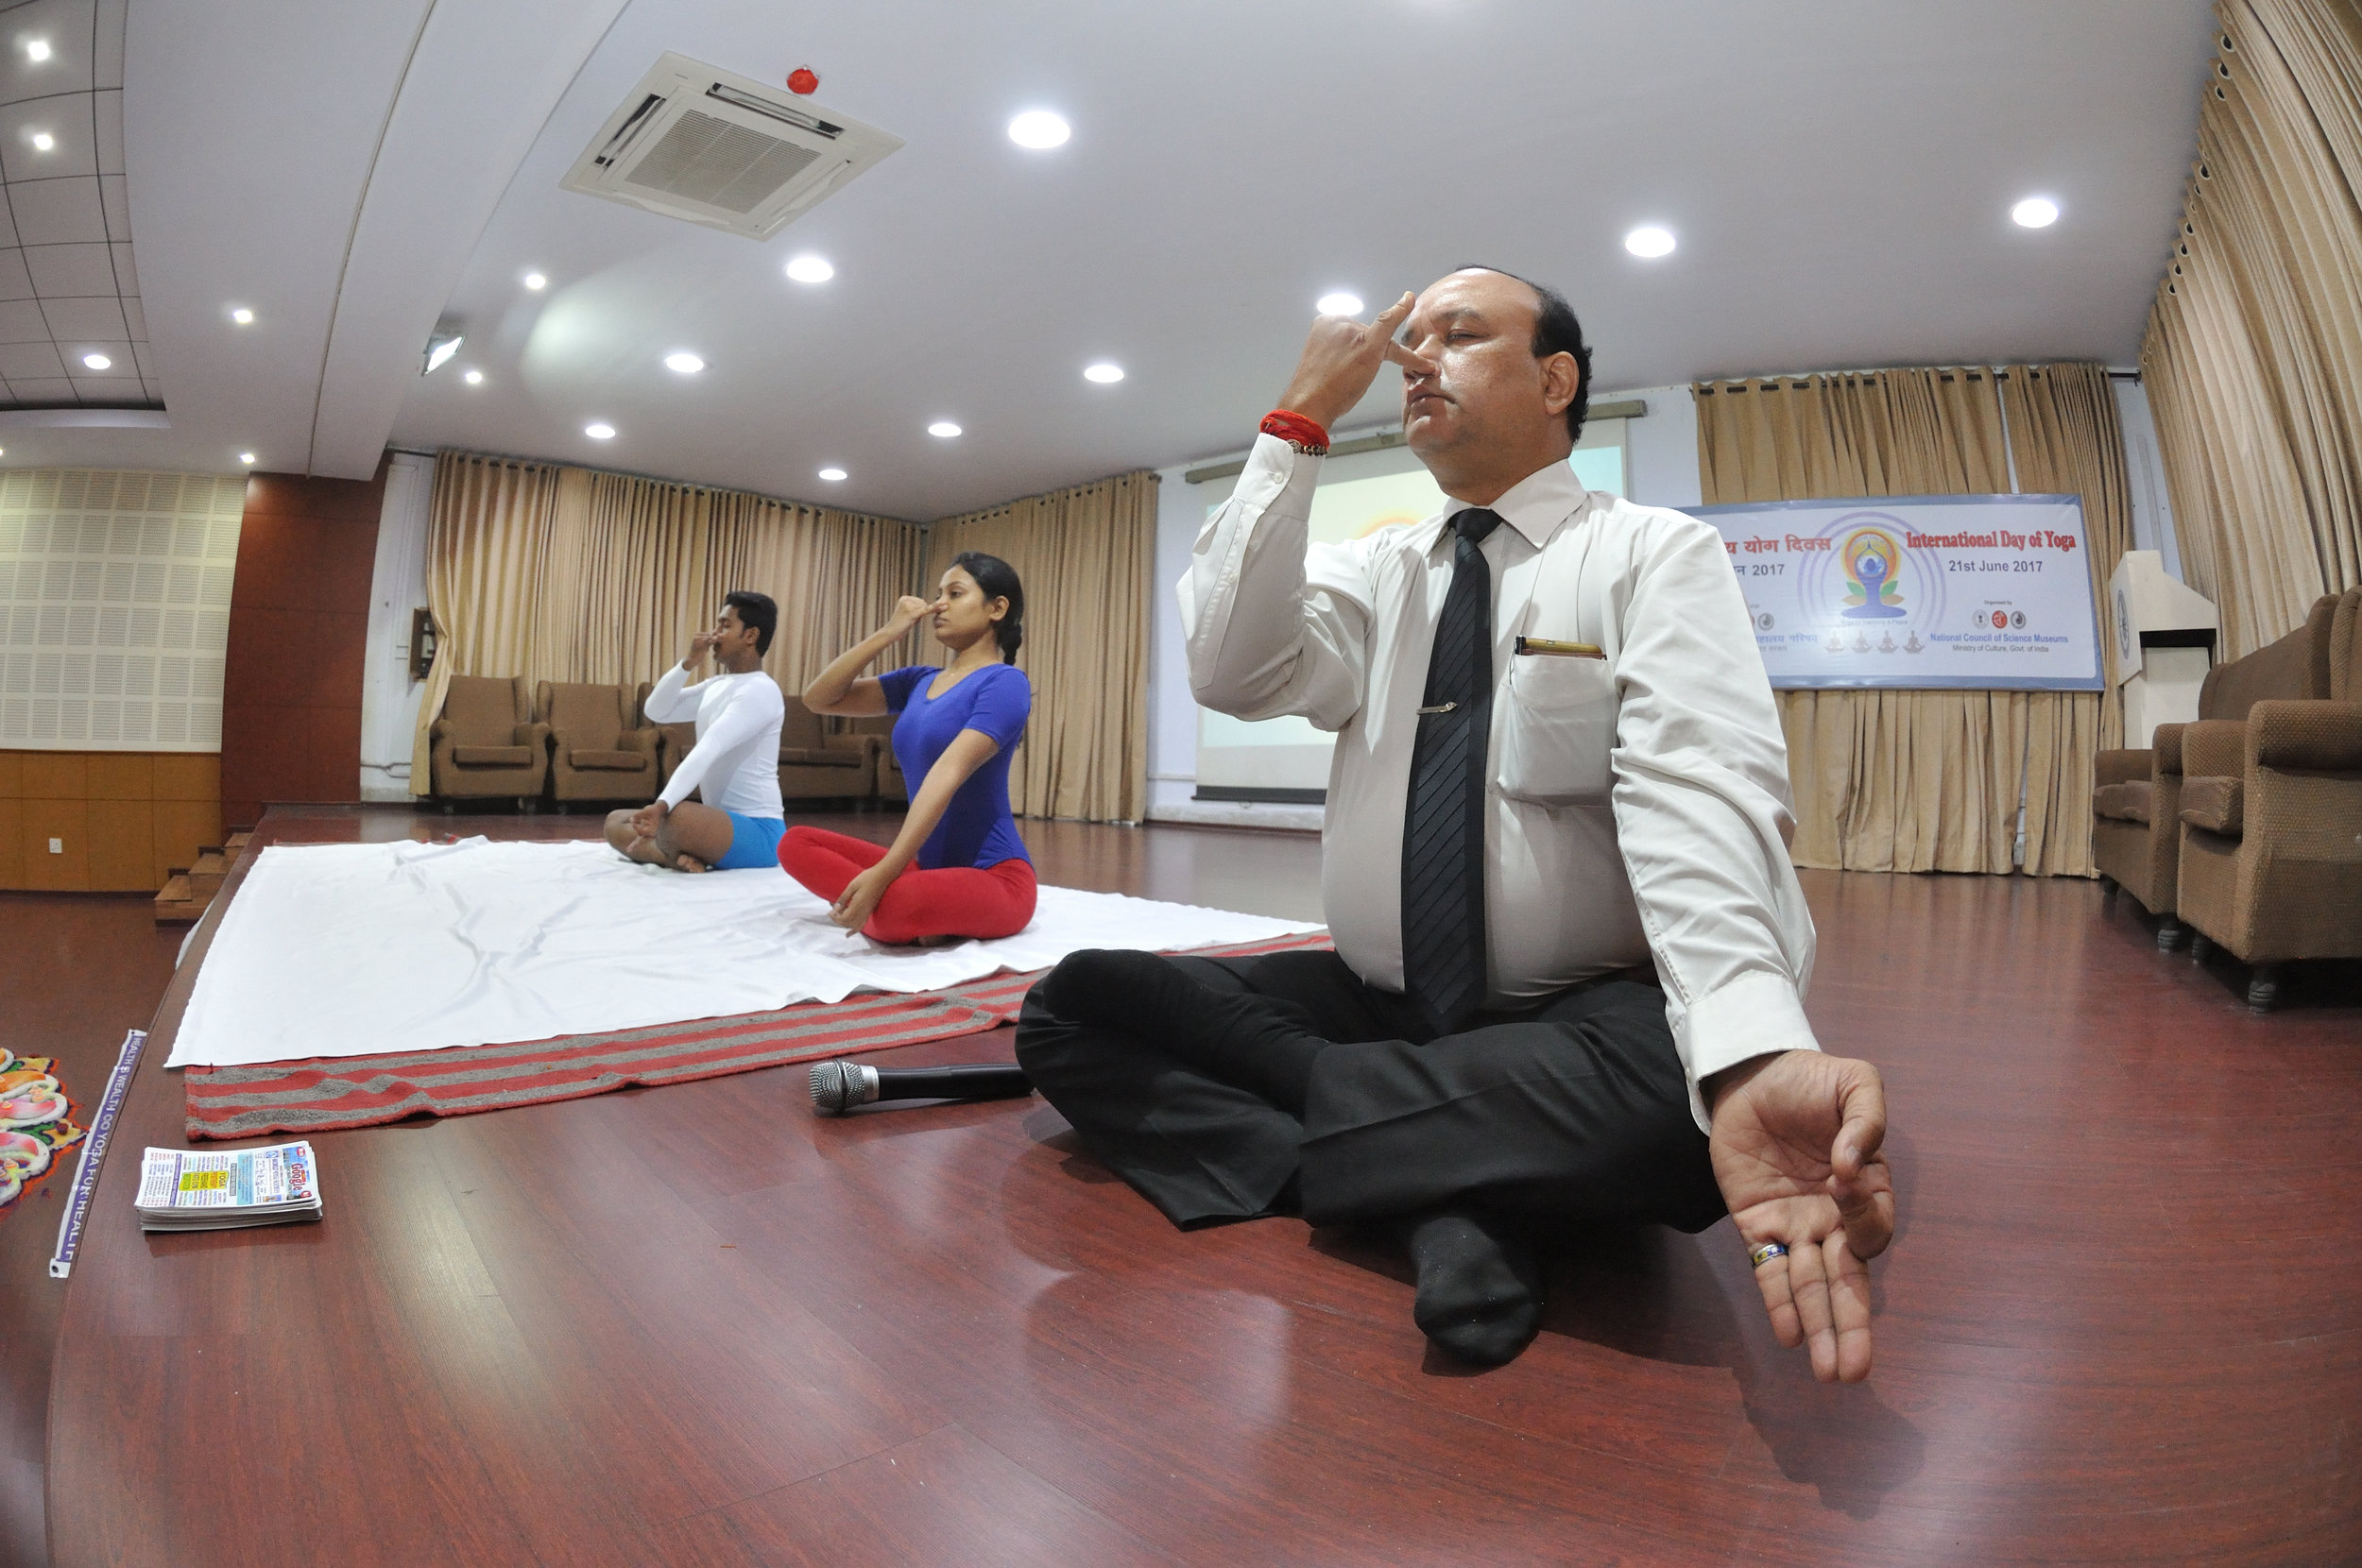 Nadishodhana_Pranayama_-_International_Day_of_Yoga_Celebration_-_NCSM_-_Kolkata_2017-06-21_2451.JPG